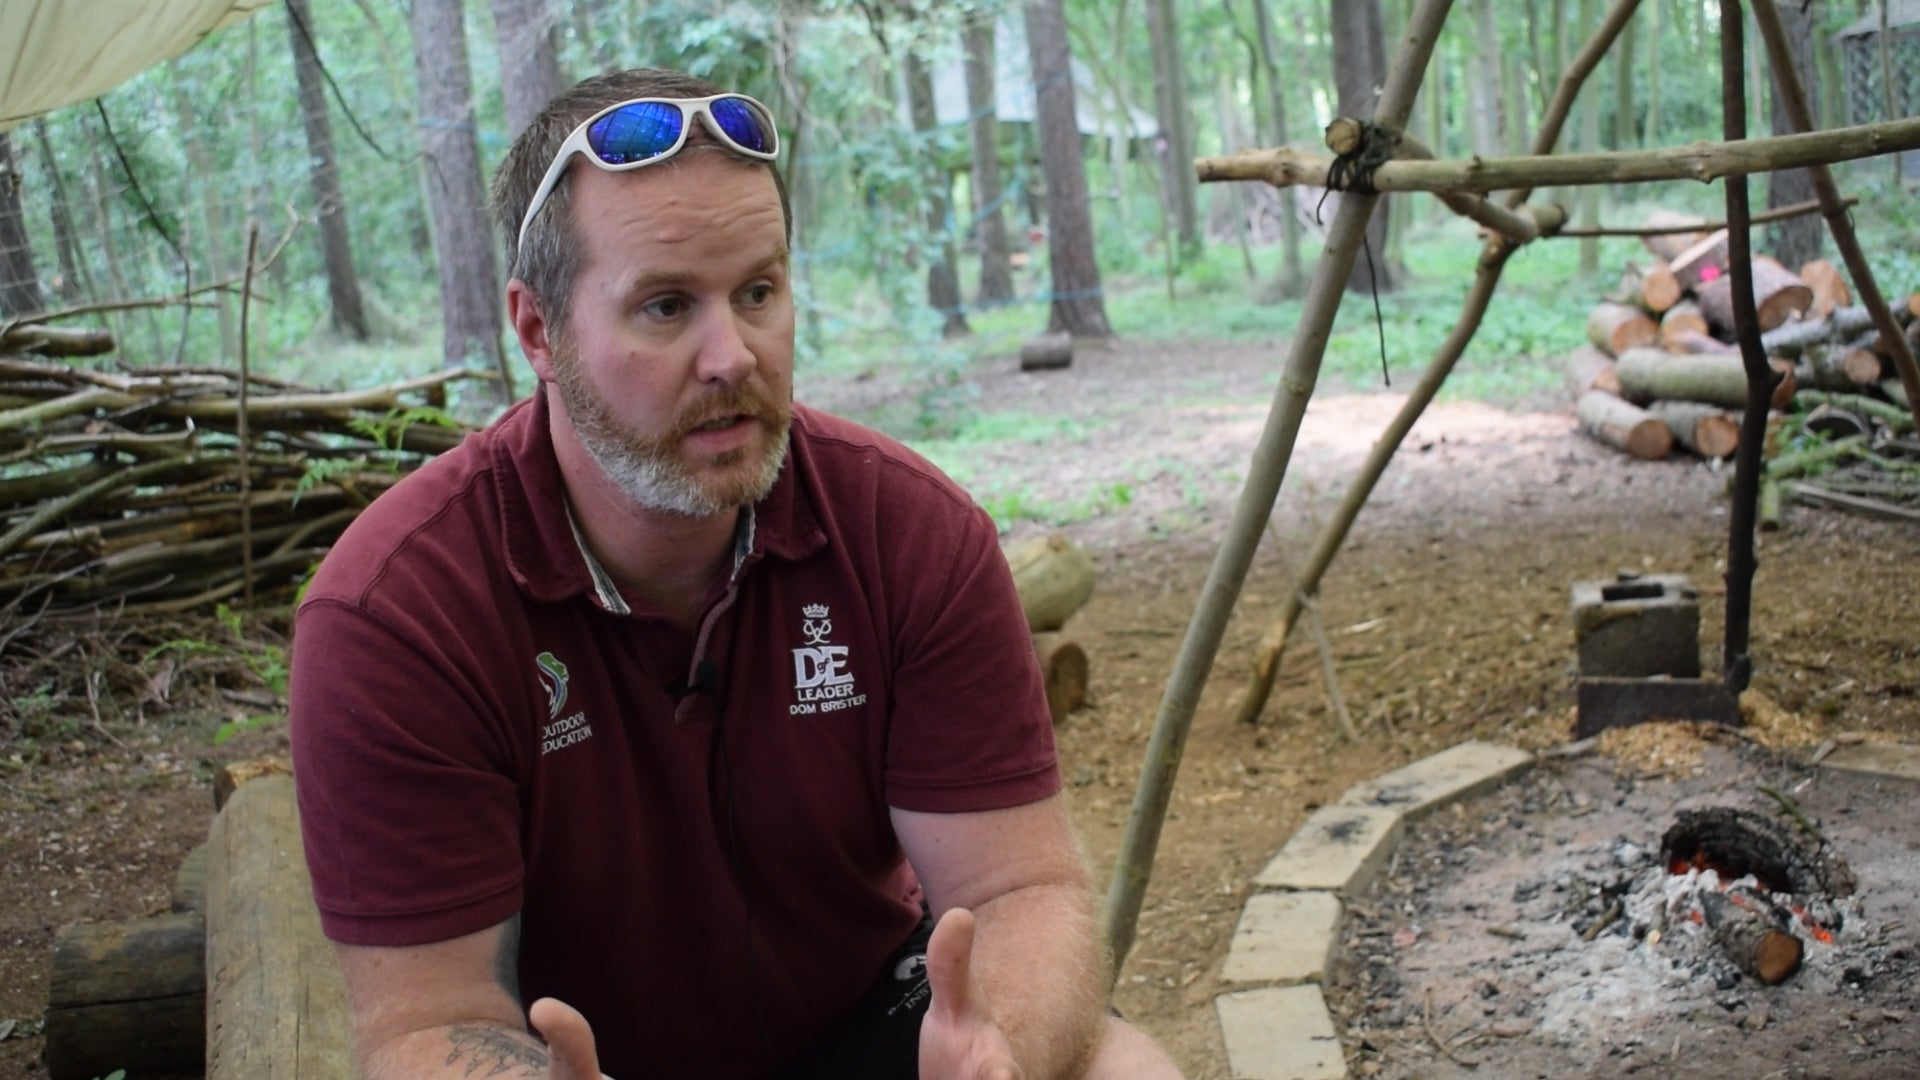 Bushcraft And Beyond's Dom Brister Interview